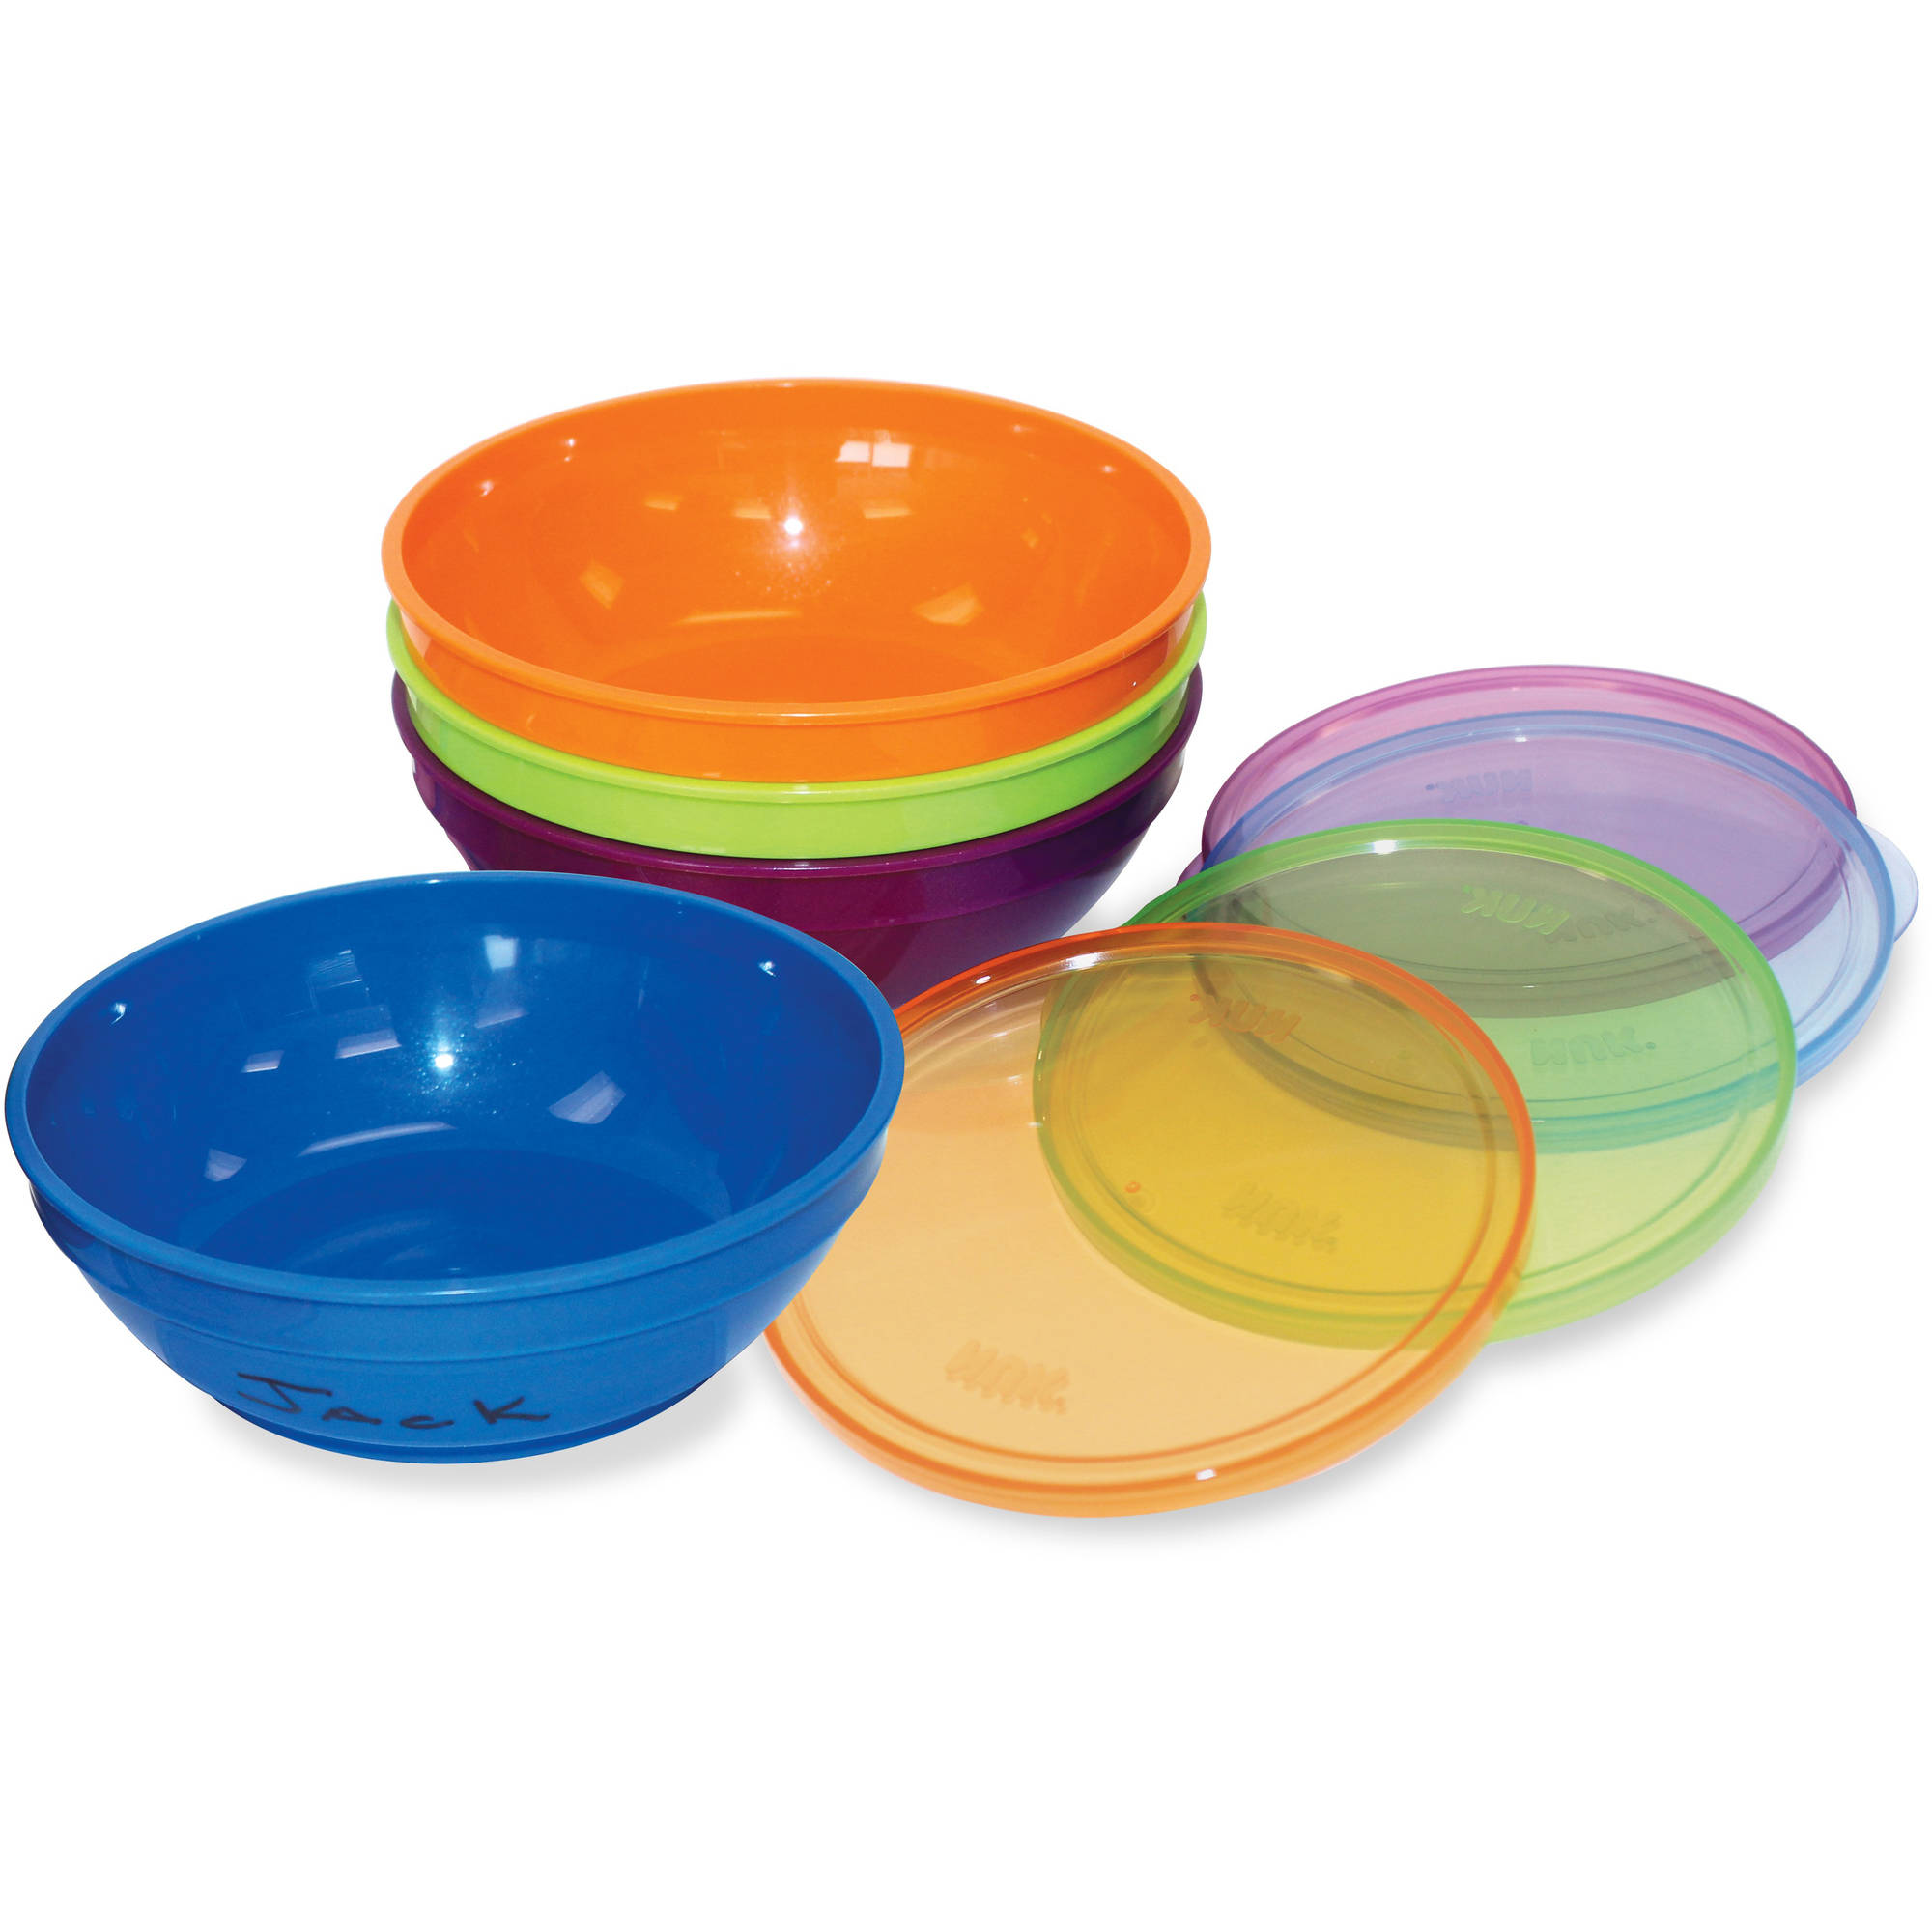 Gerber Graduates Bunch-A-Bowls Bowls And Lids, BPA-Free, 4ct